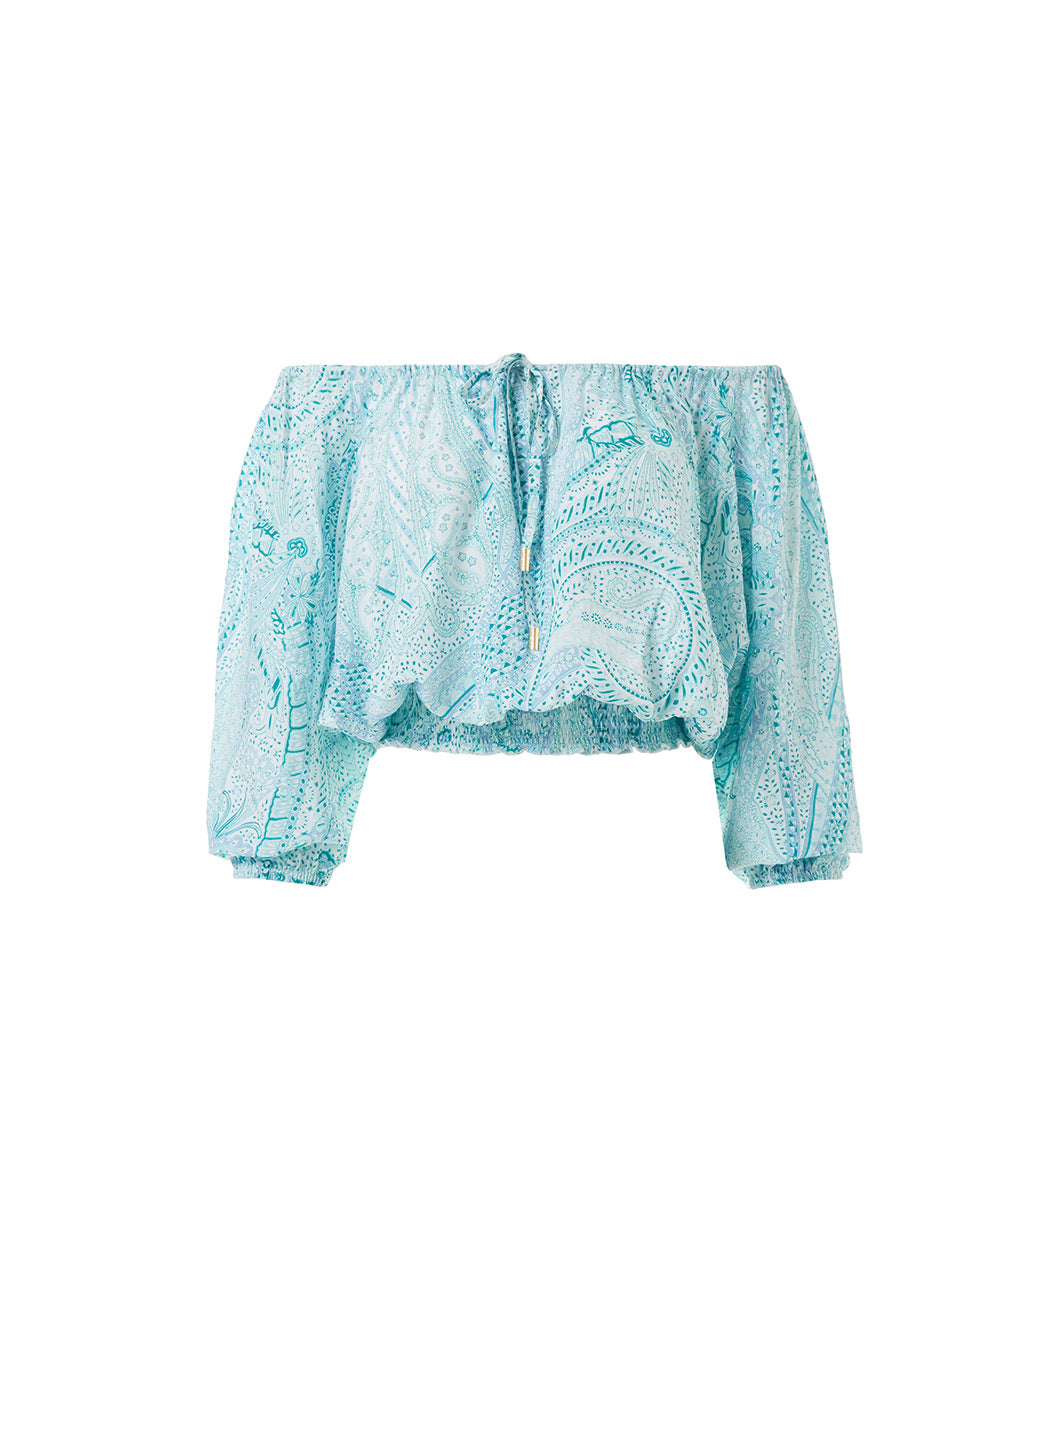 Anne Paisley Off The Shoulder Top - Melissa Odabash New Arrivals